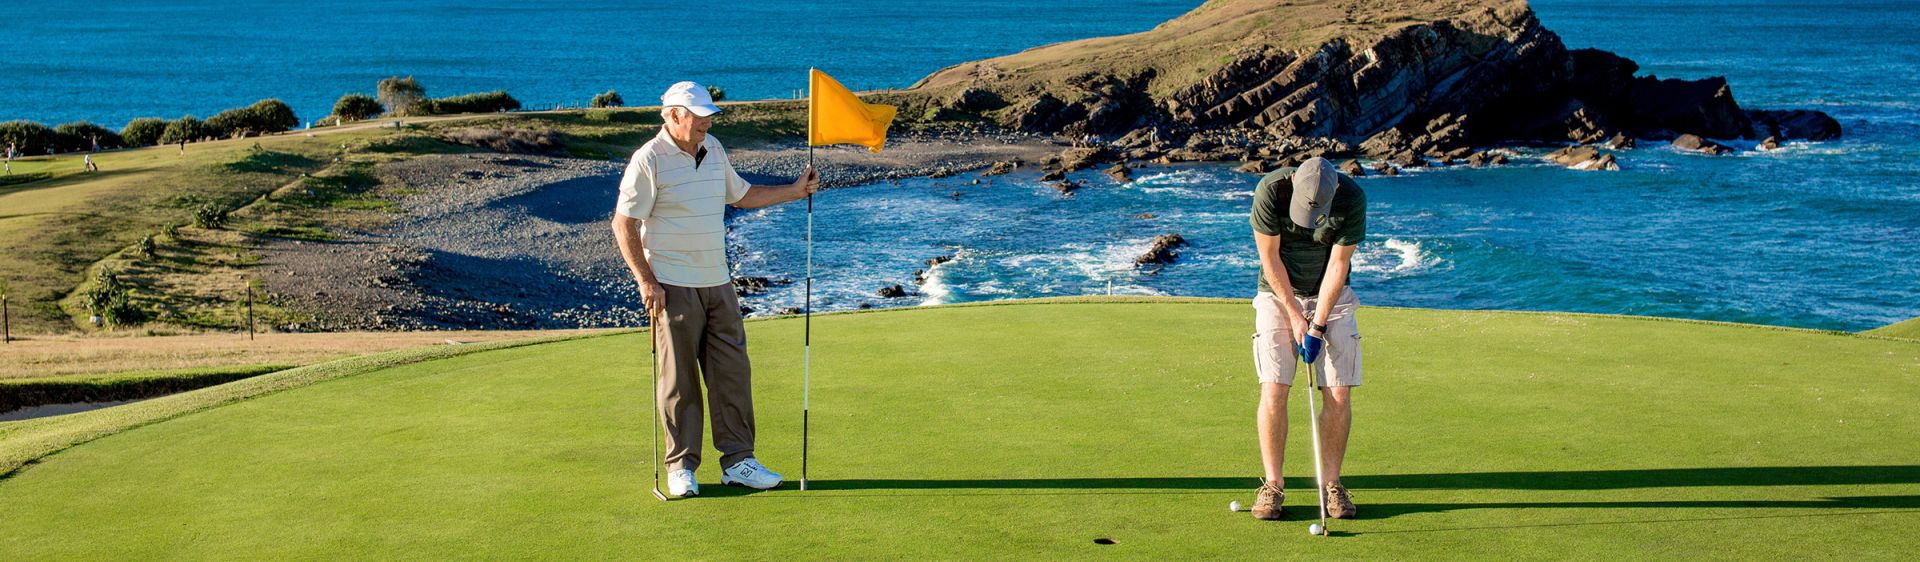 Golf at Crescent Head - North Coast